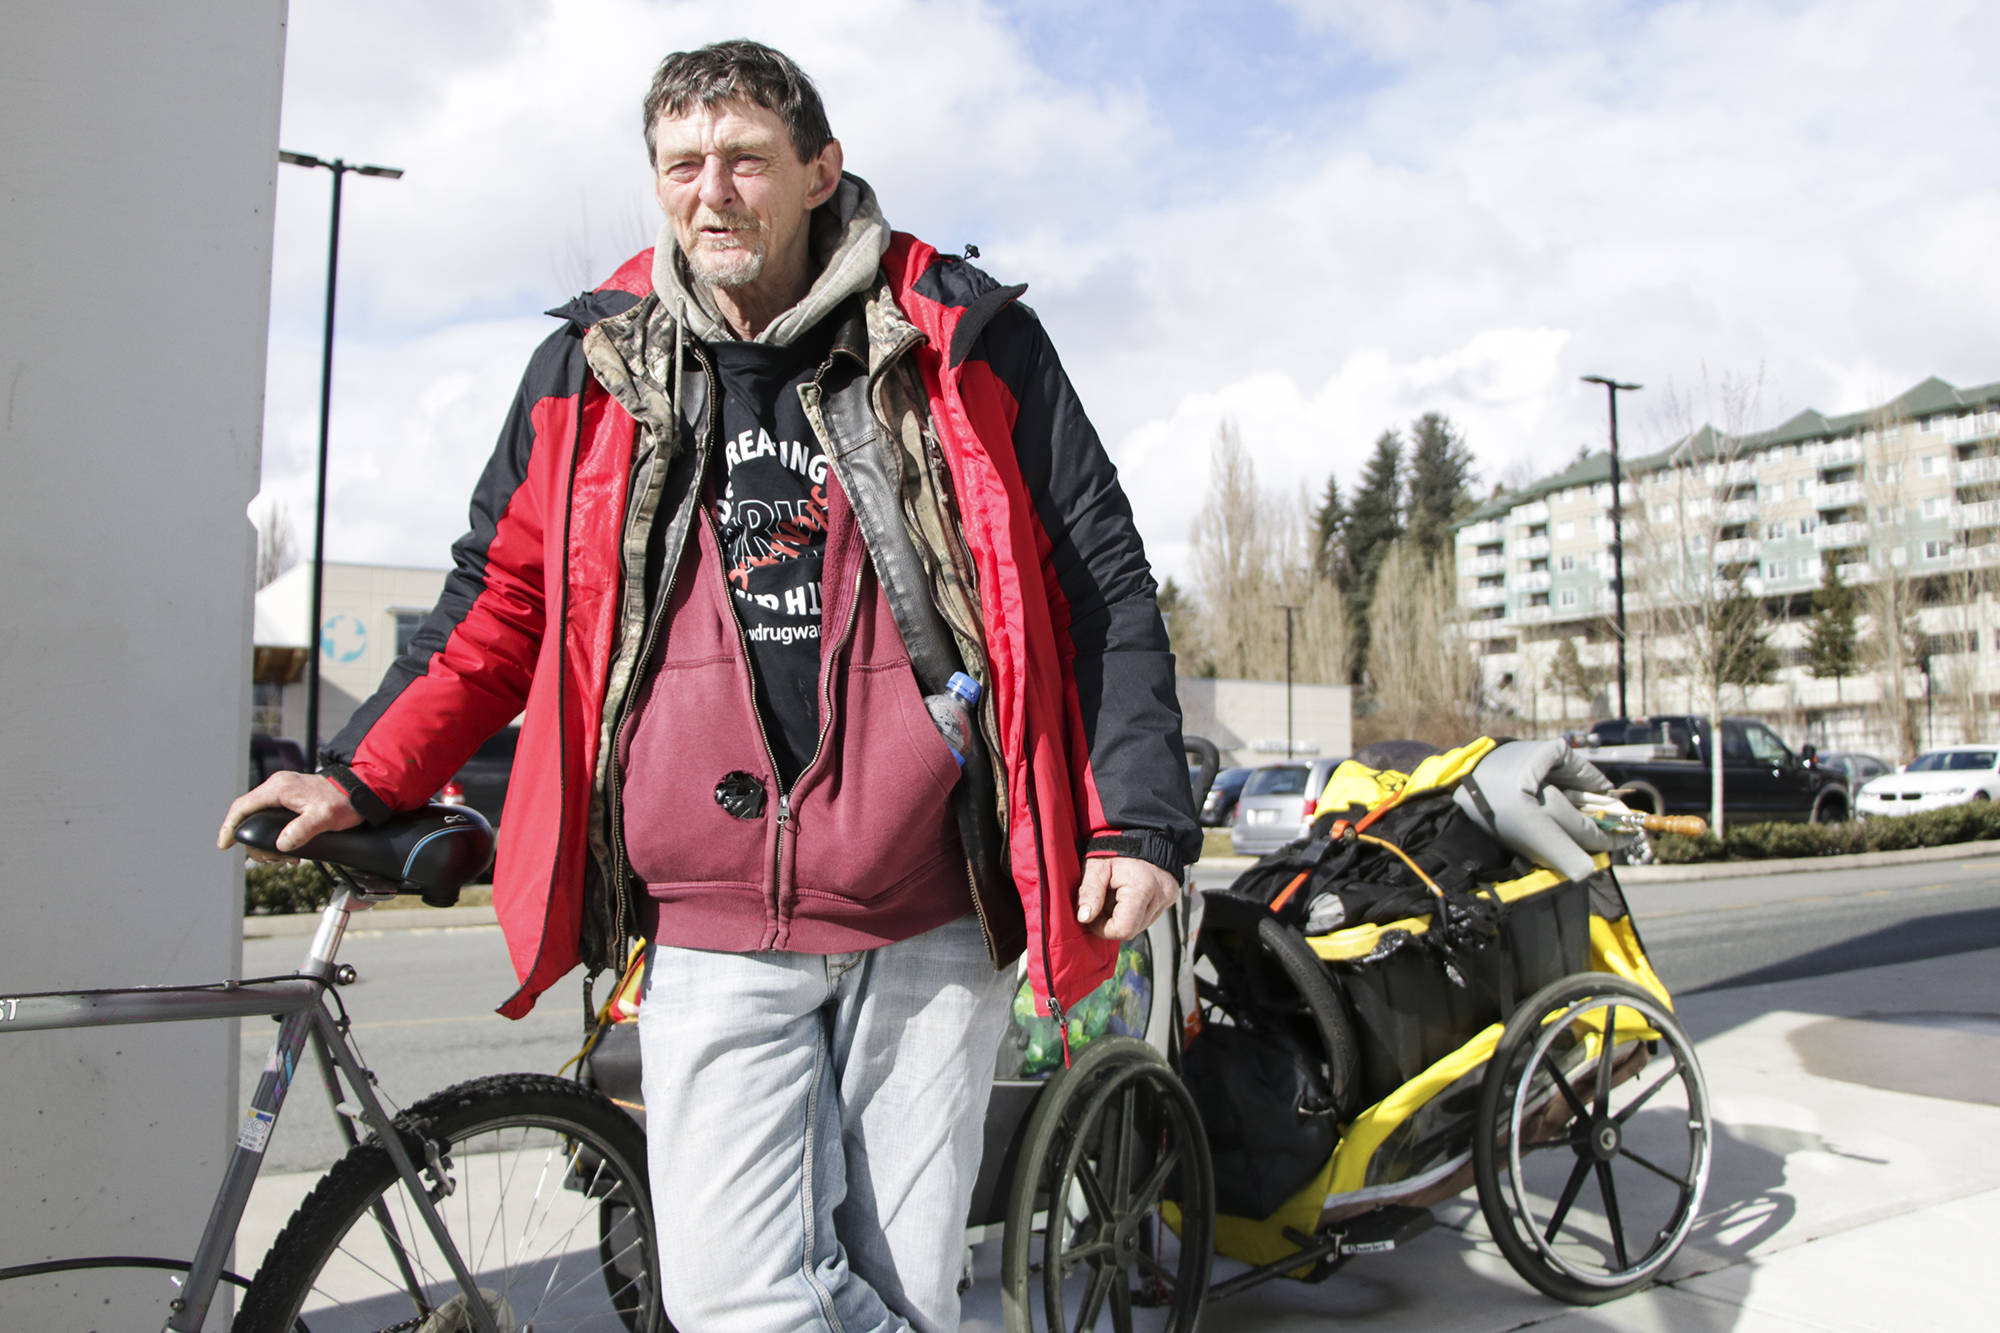 Harvey Clause, an Abbotsford homeless man and advocate, reflects on a few fatal overdoses over the past few weeks. Clause says grieving while homeless holds distinct challenges with little for privacy and little time to process grief. Dustin Godfrey/Abbotsford News